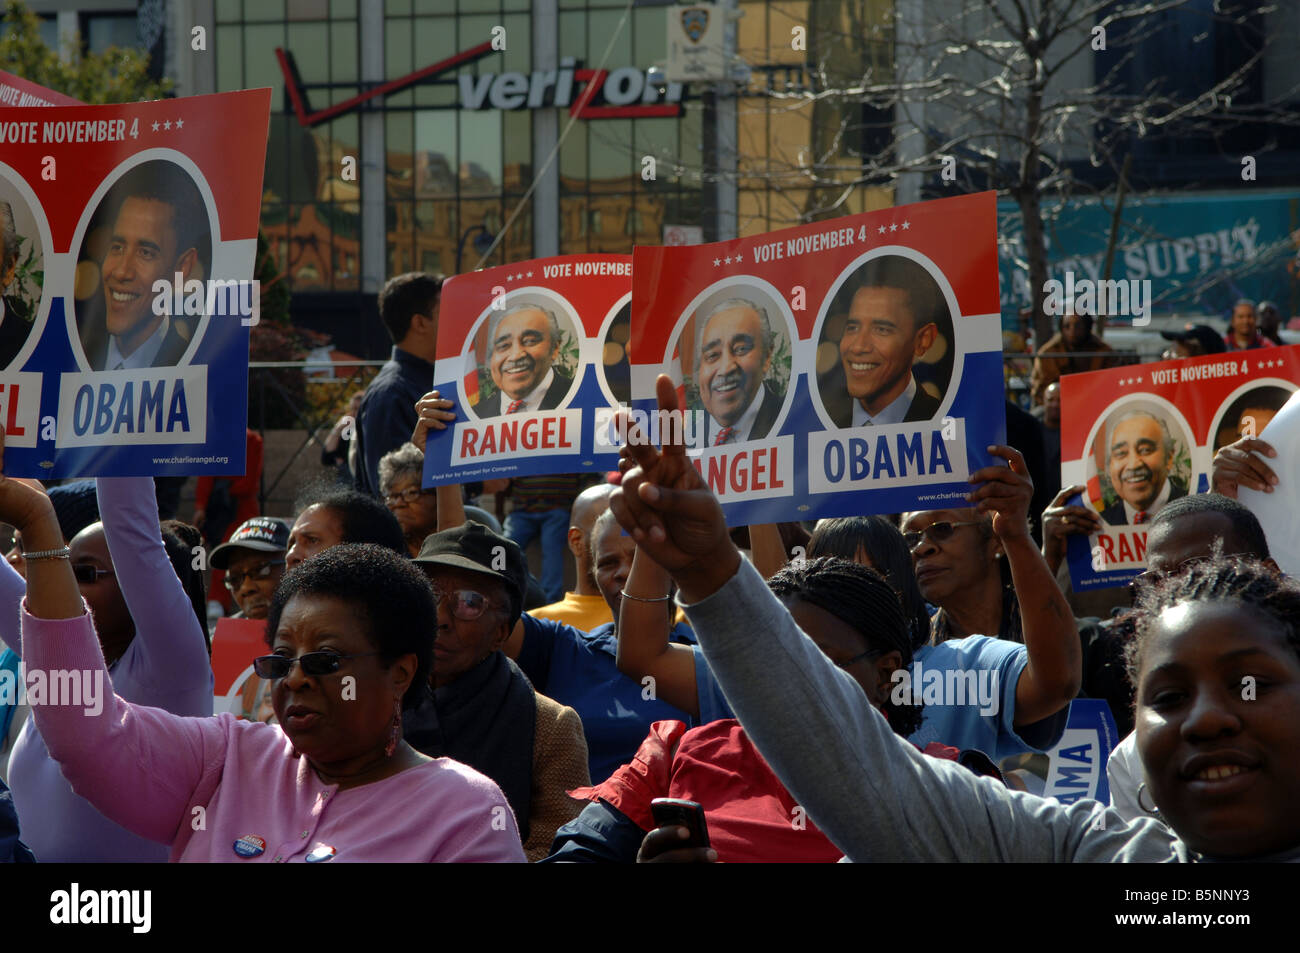 Hundreds of supporters rally in front of the Harlem State Office Building in New York for Barack Obama - Stock Image